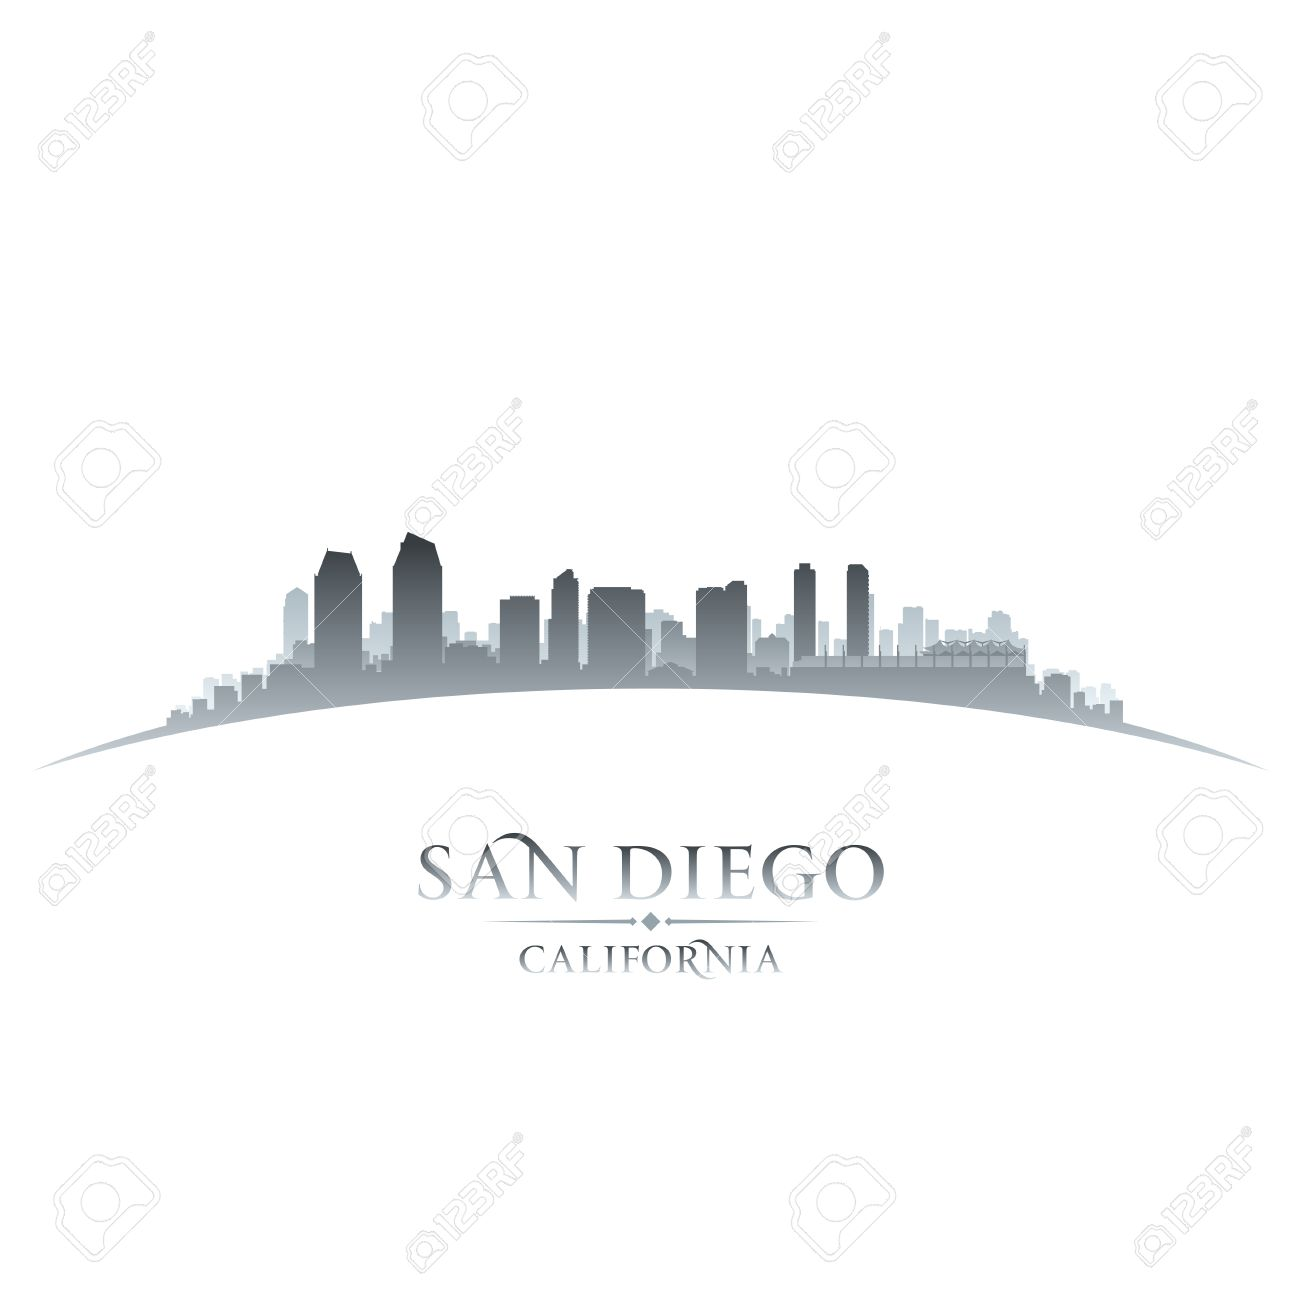 54 Downtown San Diego Cliparts, Stock Vector And Royalty Free ...